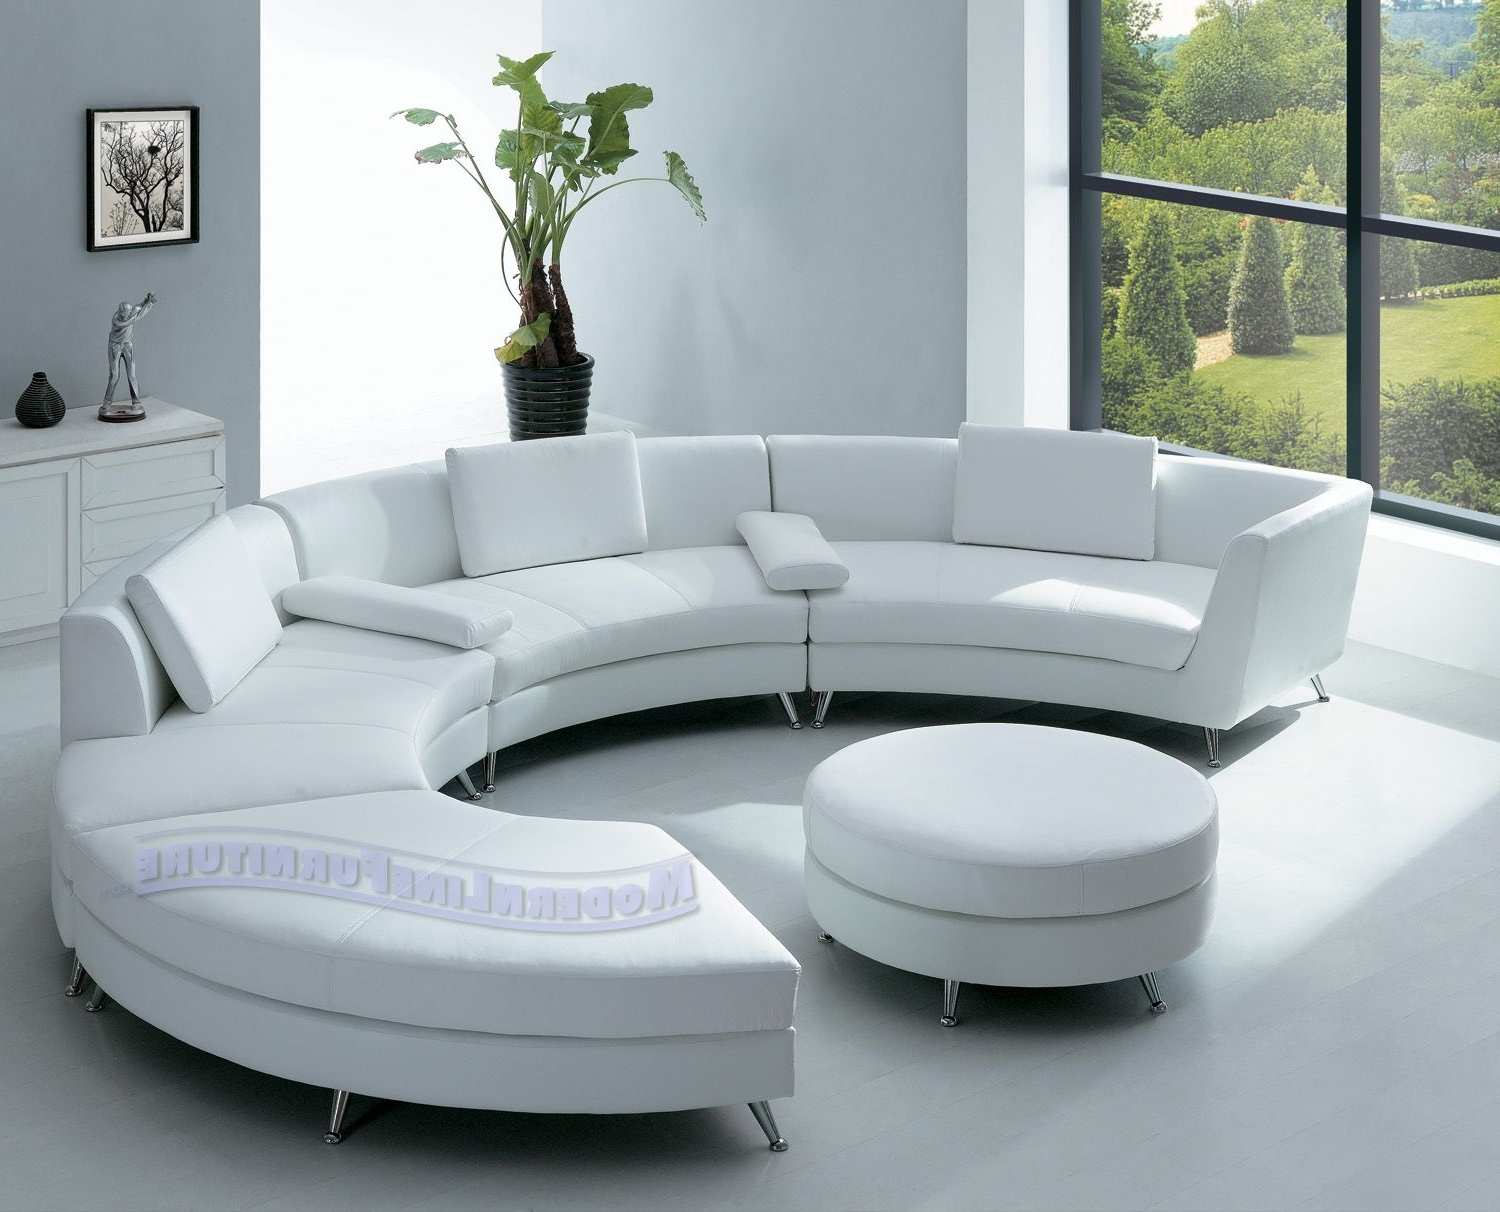 Best And Newest Contemporary Sofa Chairs For Room Furniture With Elegant Half Circle Sofa Home Interior Designs (View 8 of 15)